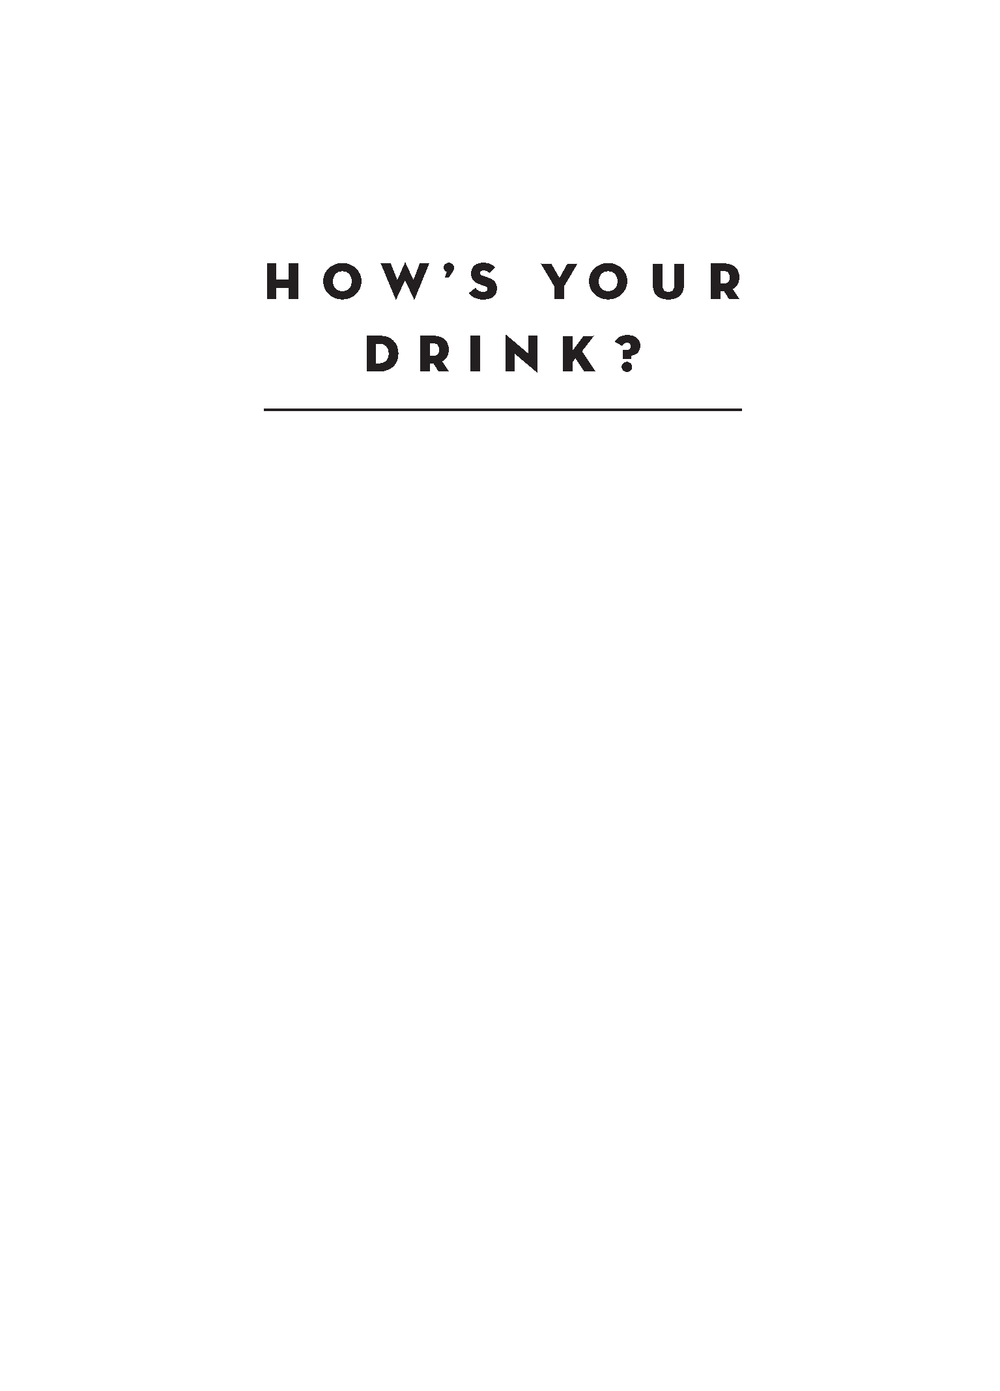 How's your drink_Page_02.png